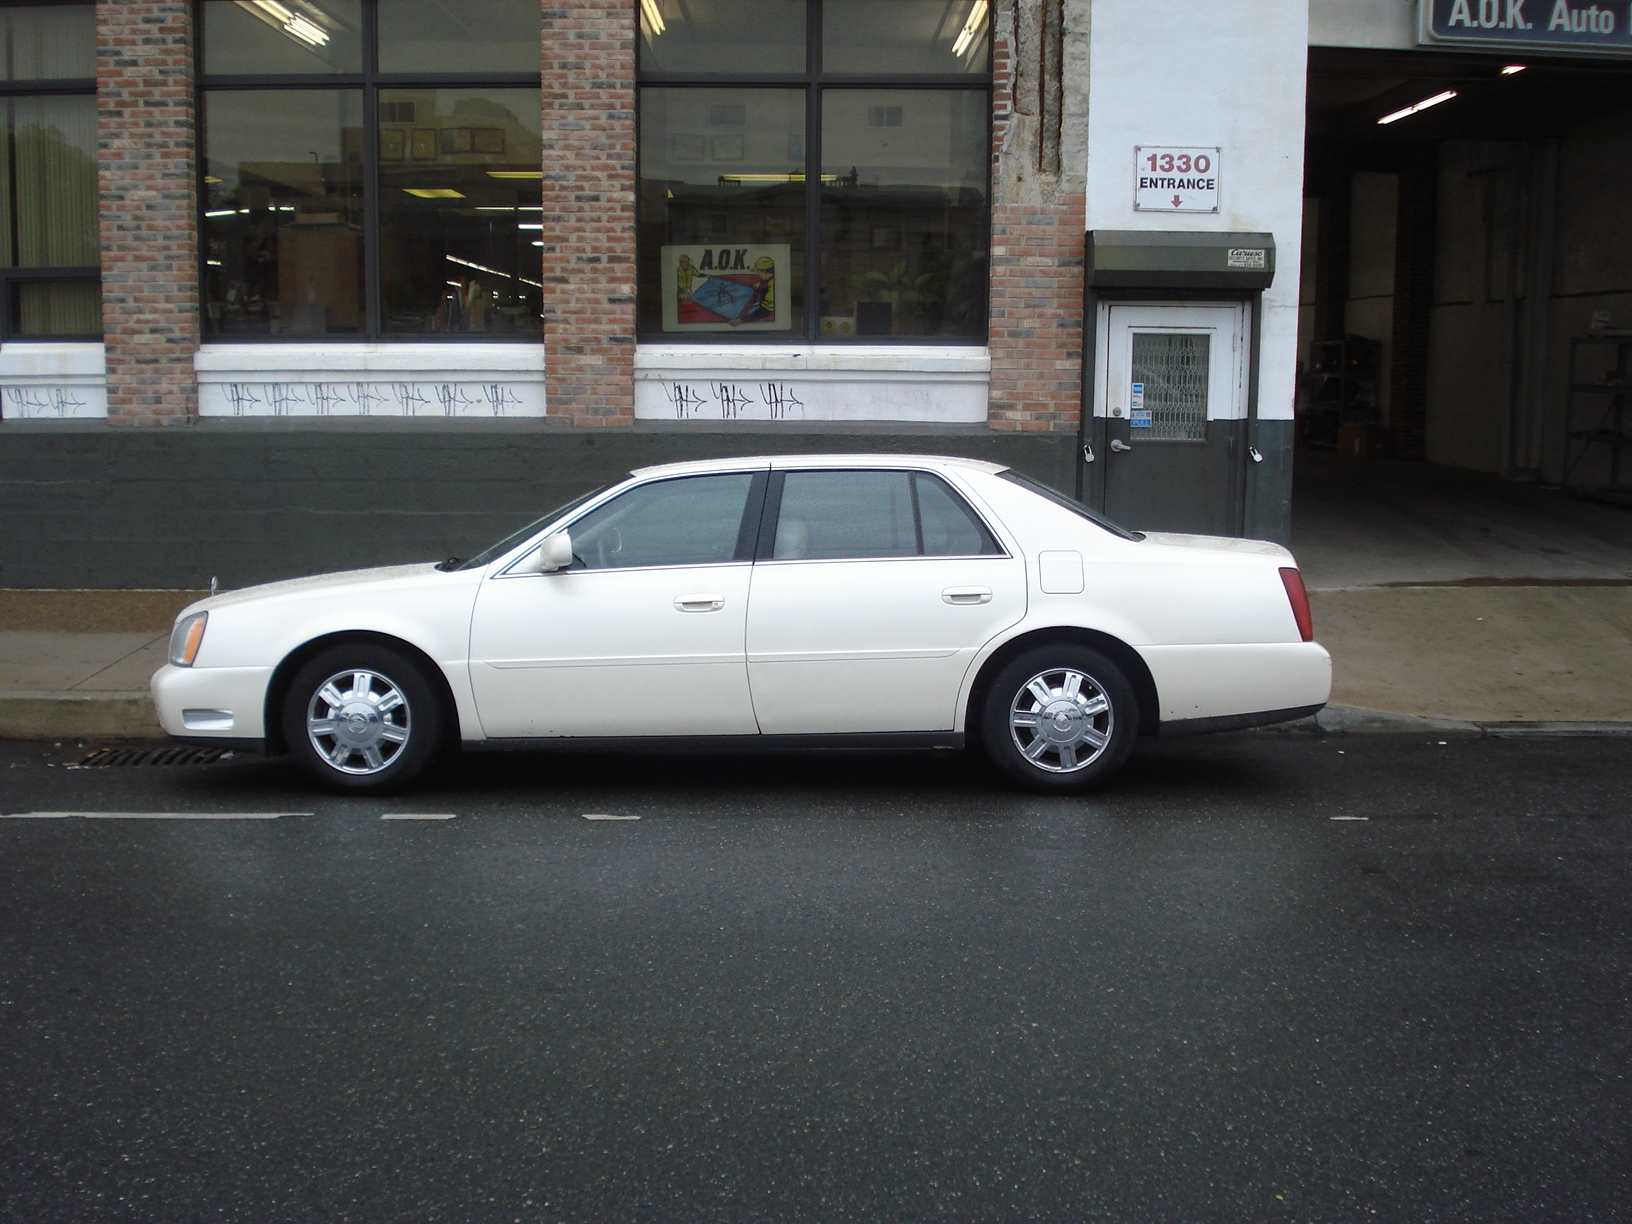 hight resolution of 2003 cadillac deville information and photos zomb drive cadillac cien concept car on 2004 cadillac deville 4 6 engine diagram